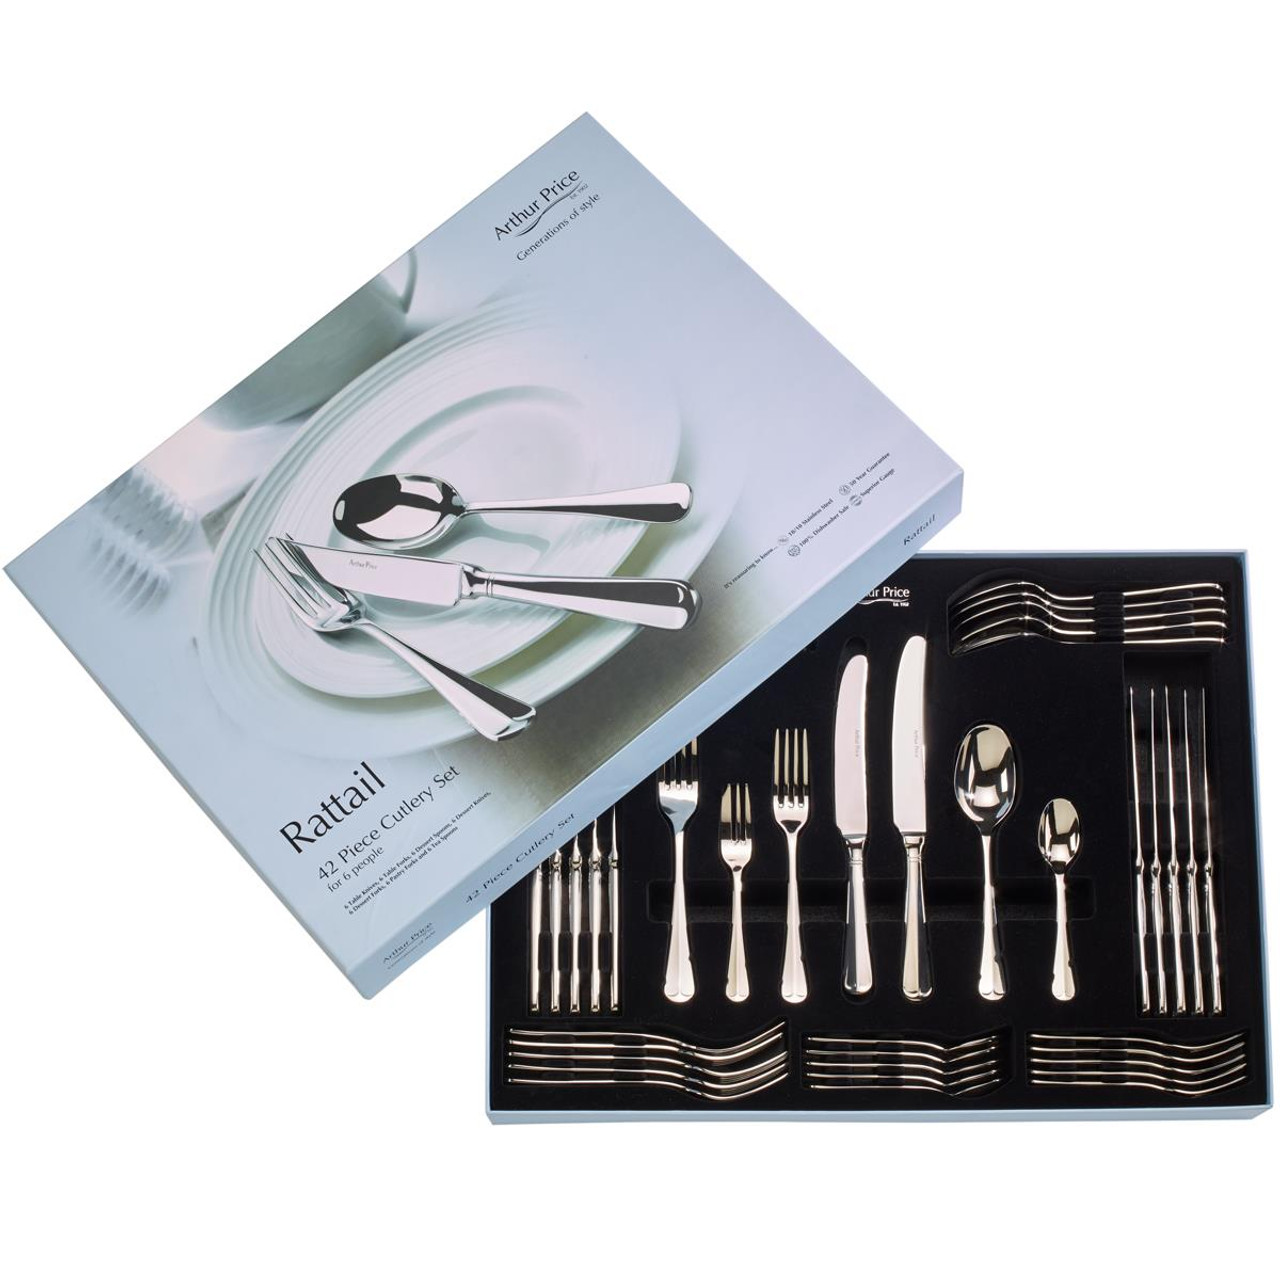 Arthur Price Rattail 42 Piece Cutlery Set